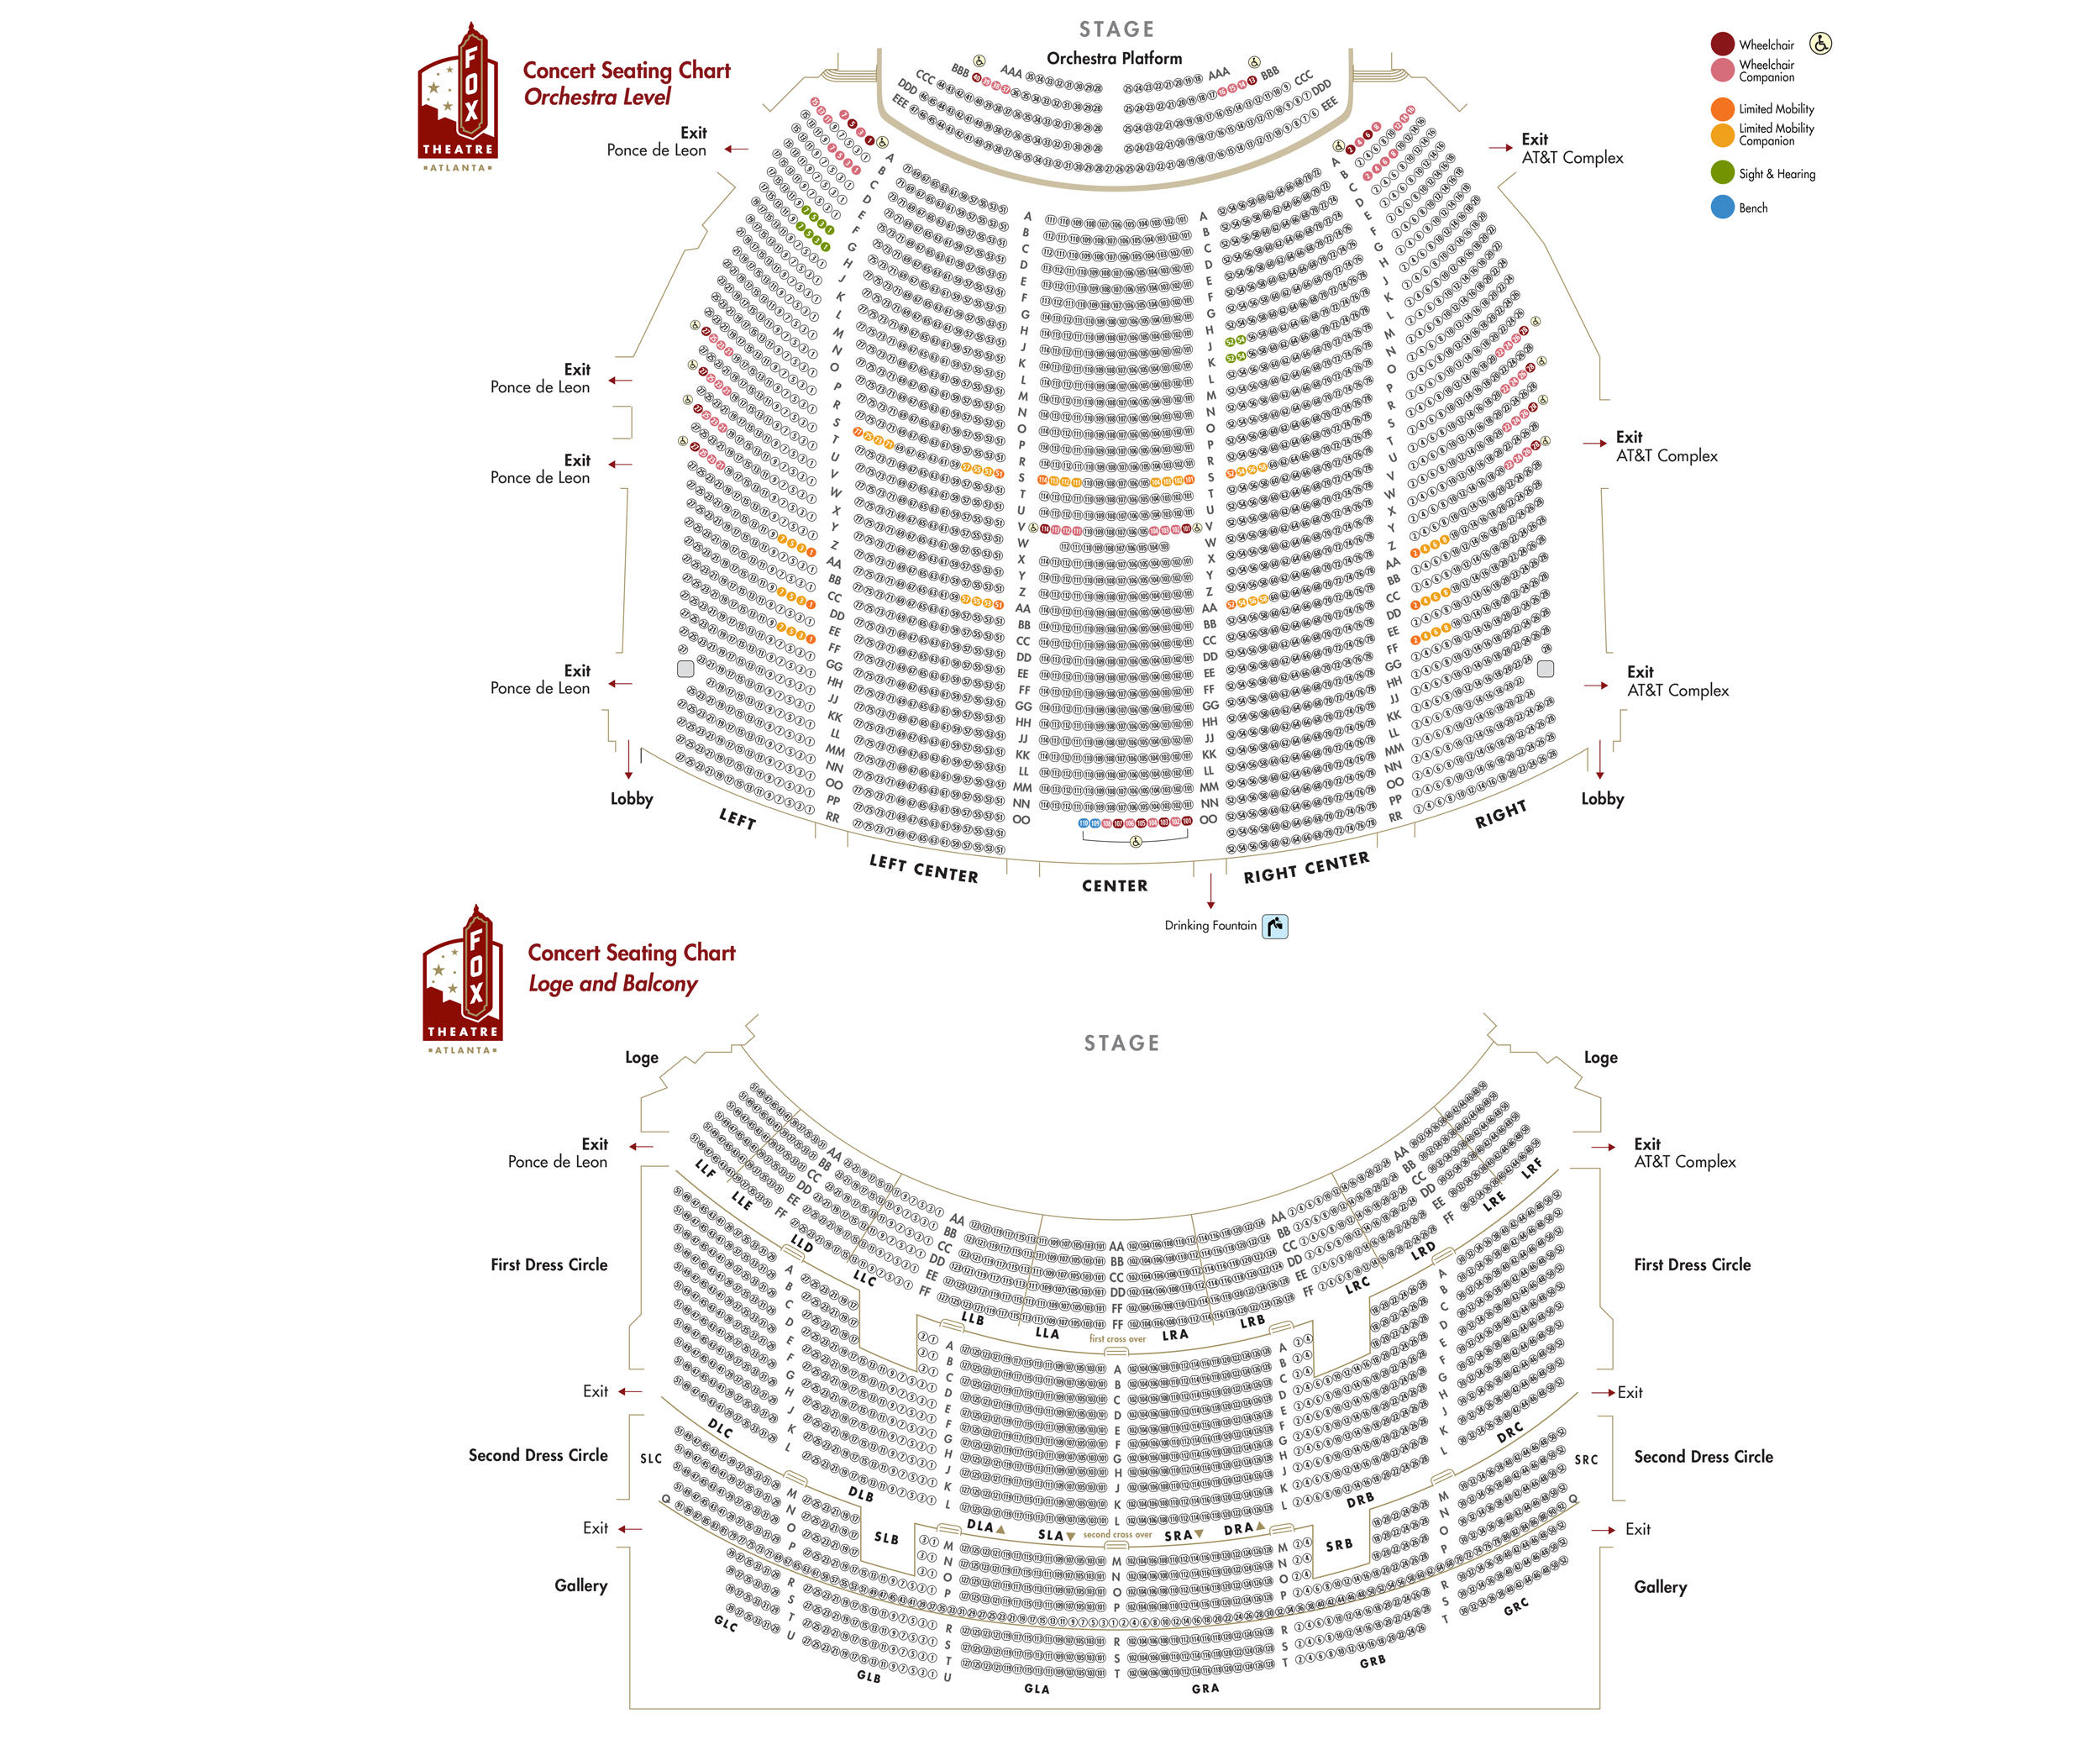 Fox seating chart atlanta ibov jonathandedecker com